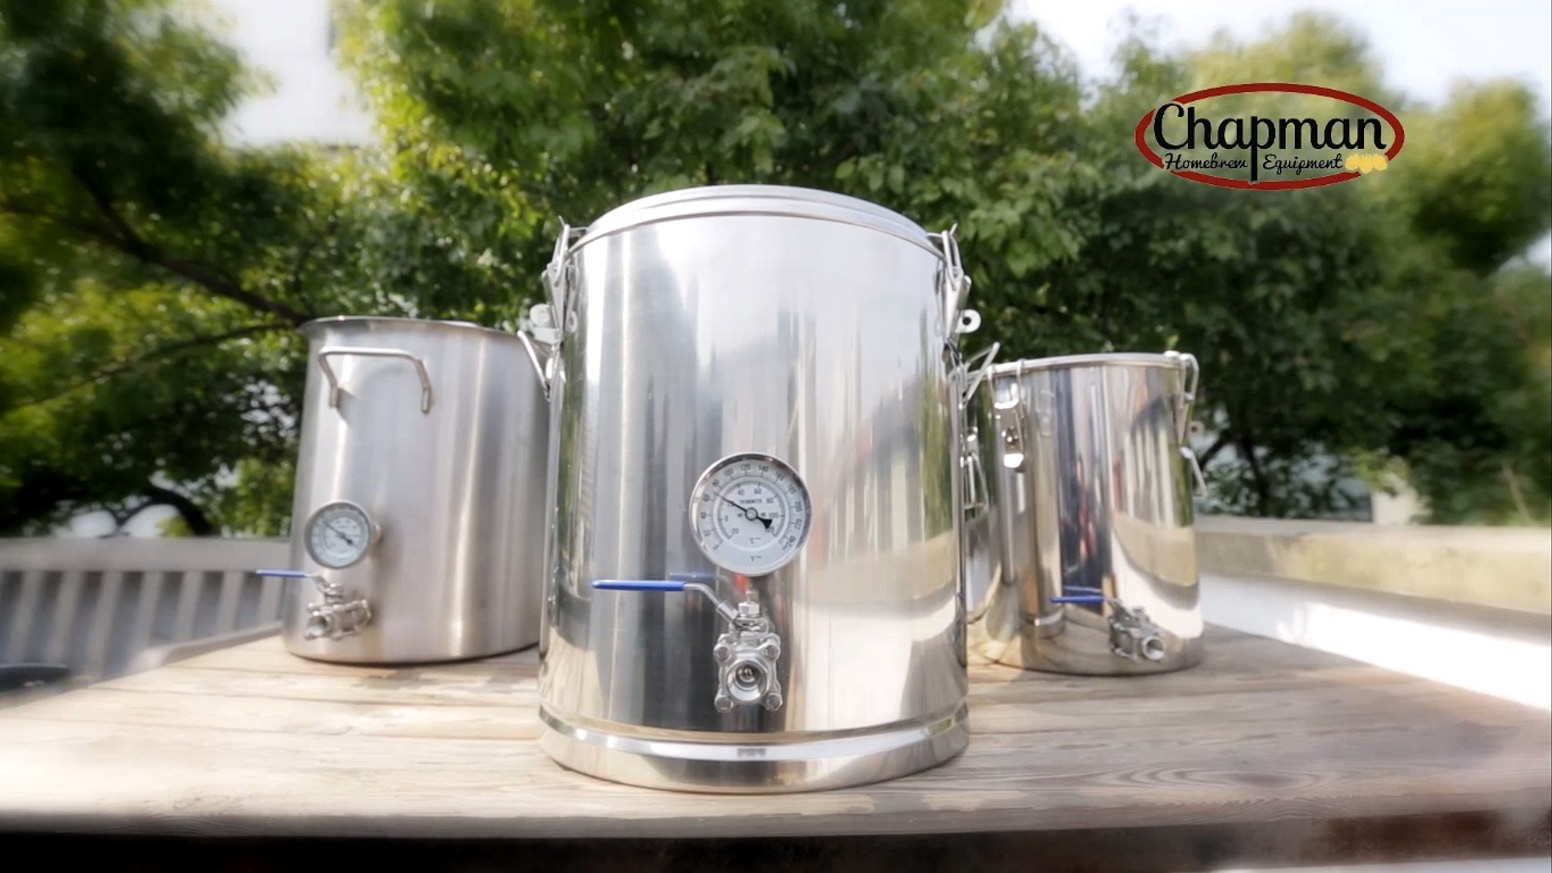 Introducing the ThermoBarrel™ insulated mash tun, SteelTank™ stainless steel fermenter, and Heavy Kettler™ tri-clad brew kettle.